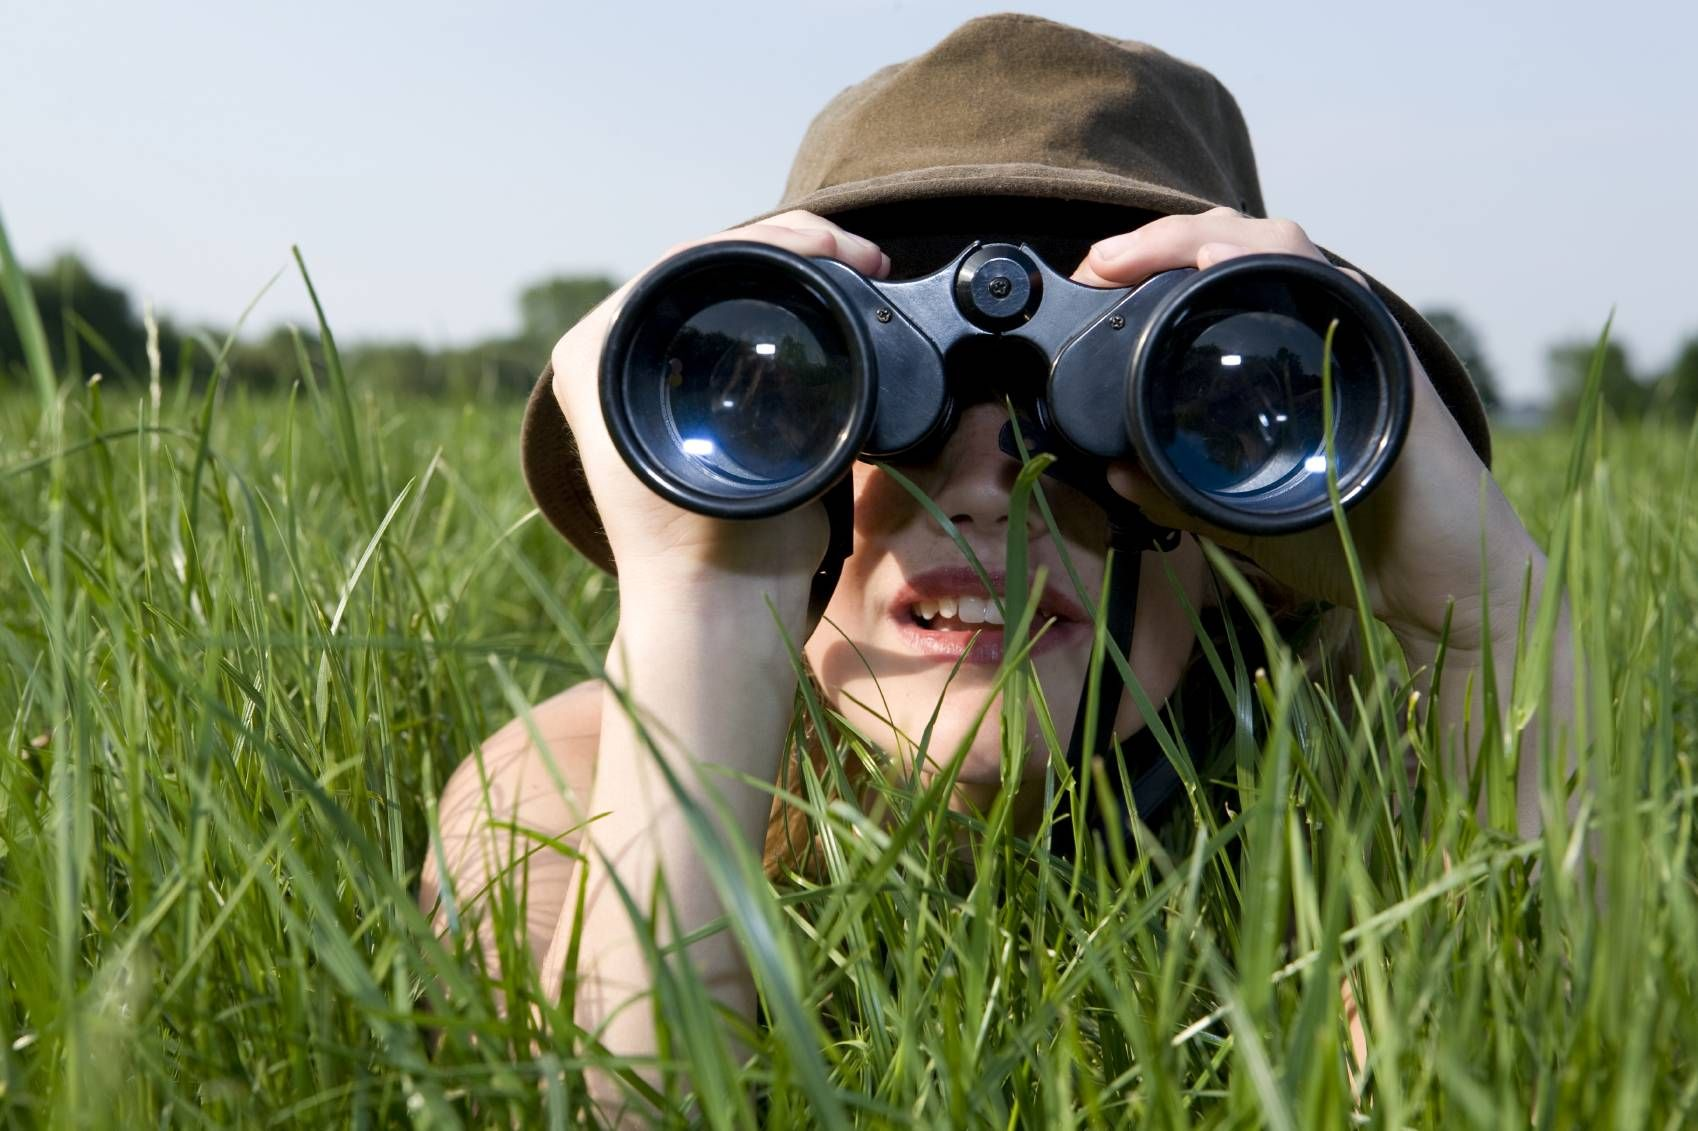 Another important skill of innovation is observing. Binoculars are ...